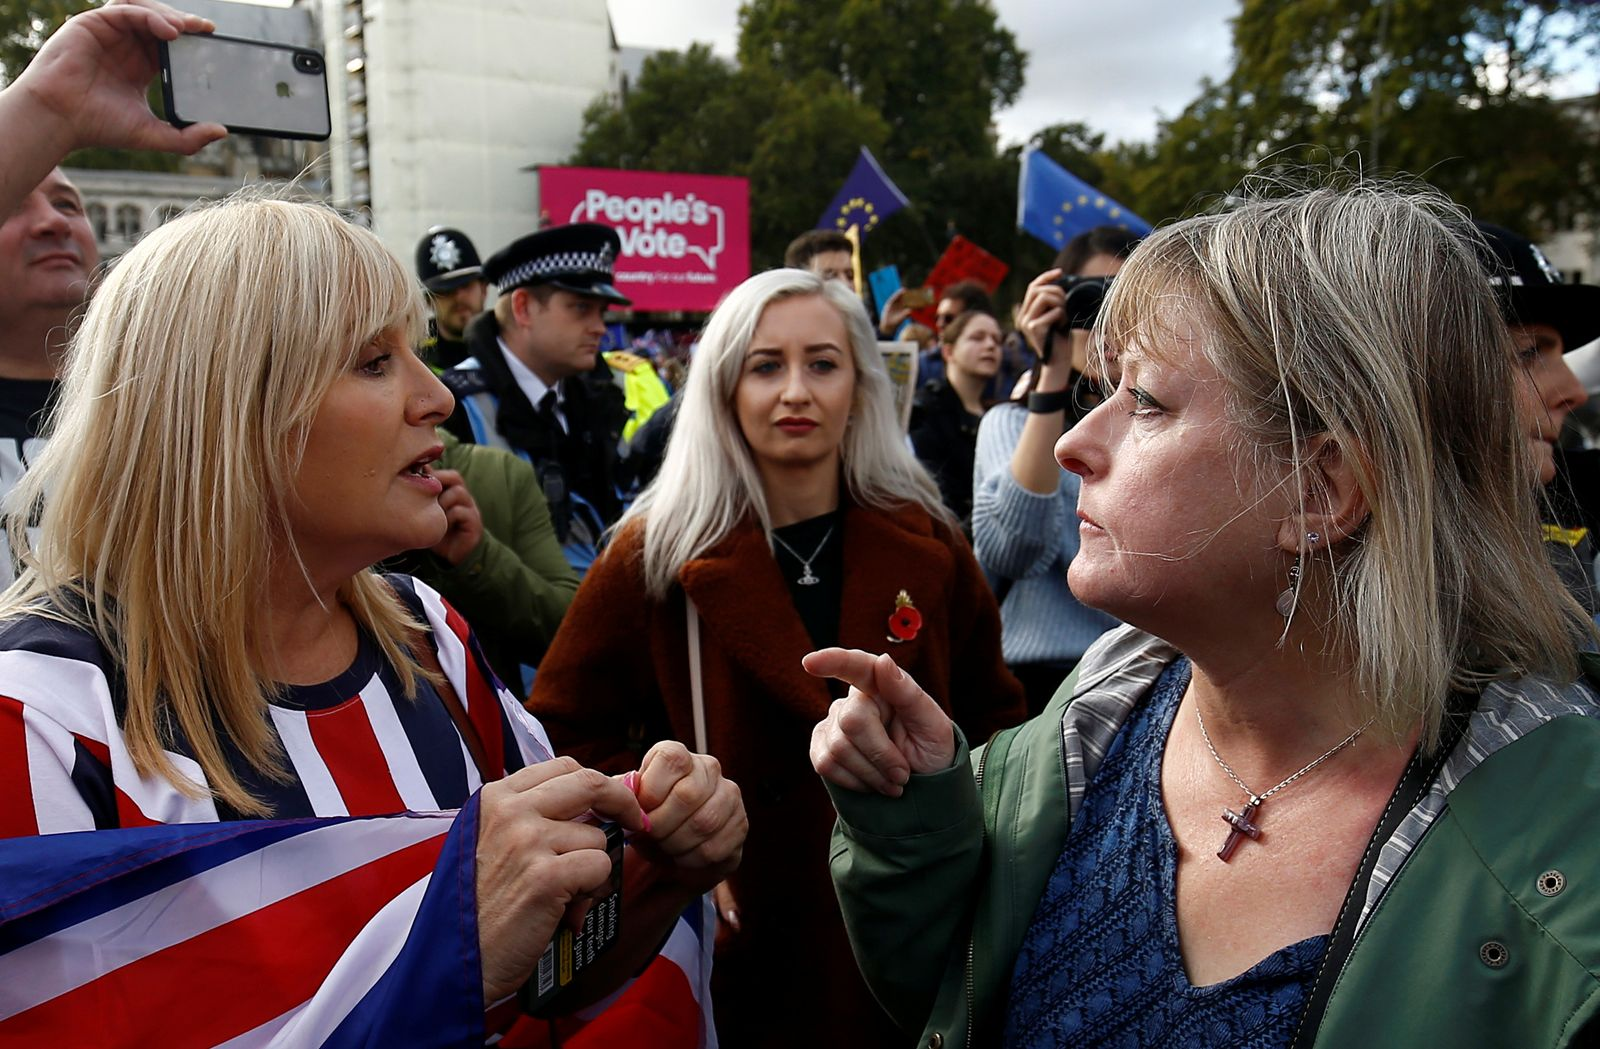 Pro-Brexit and anti-Brexit demonstrators argue at the Parliament Square as parliament sits on a Saturday for the first time since the 1982 Falklands War, to discuss Brexit in London